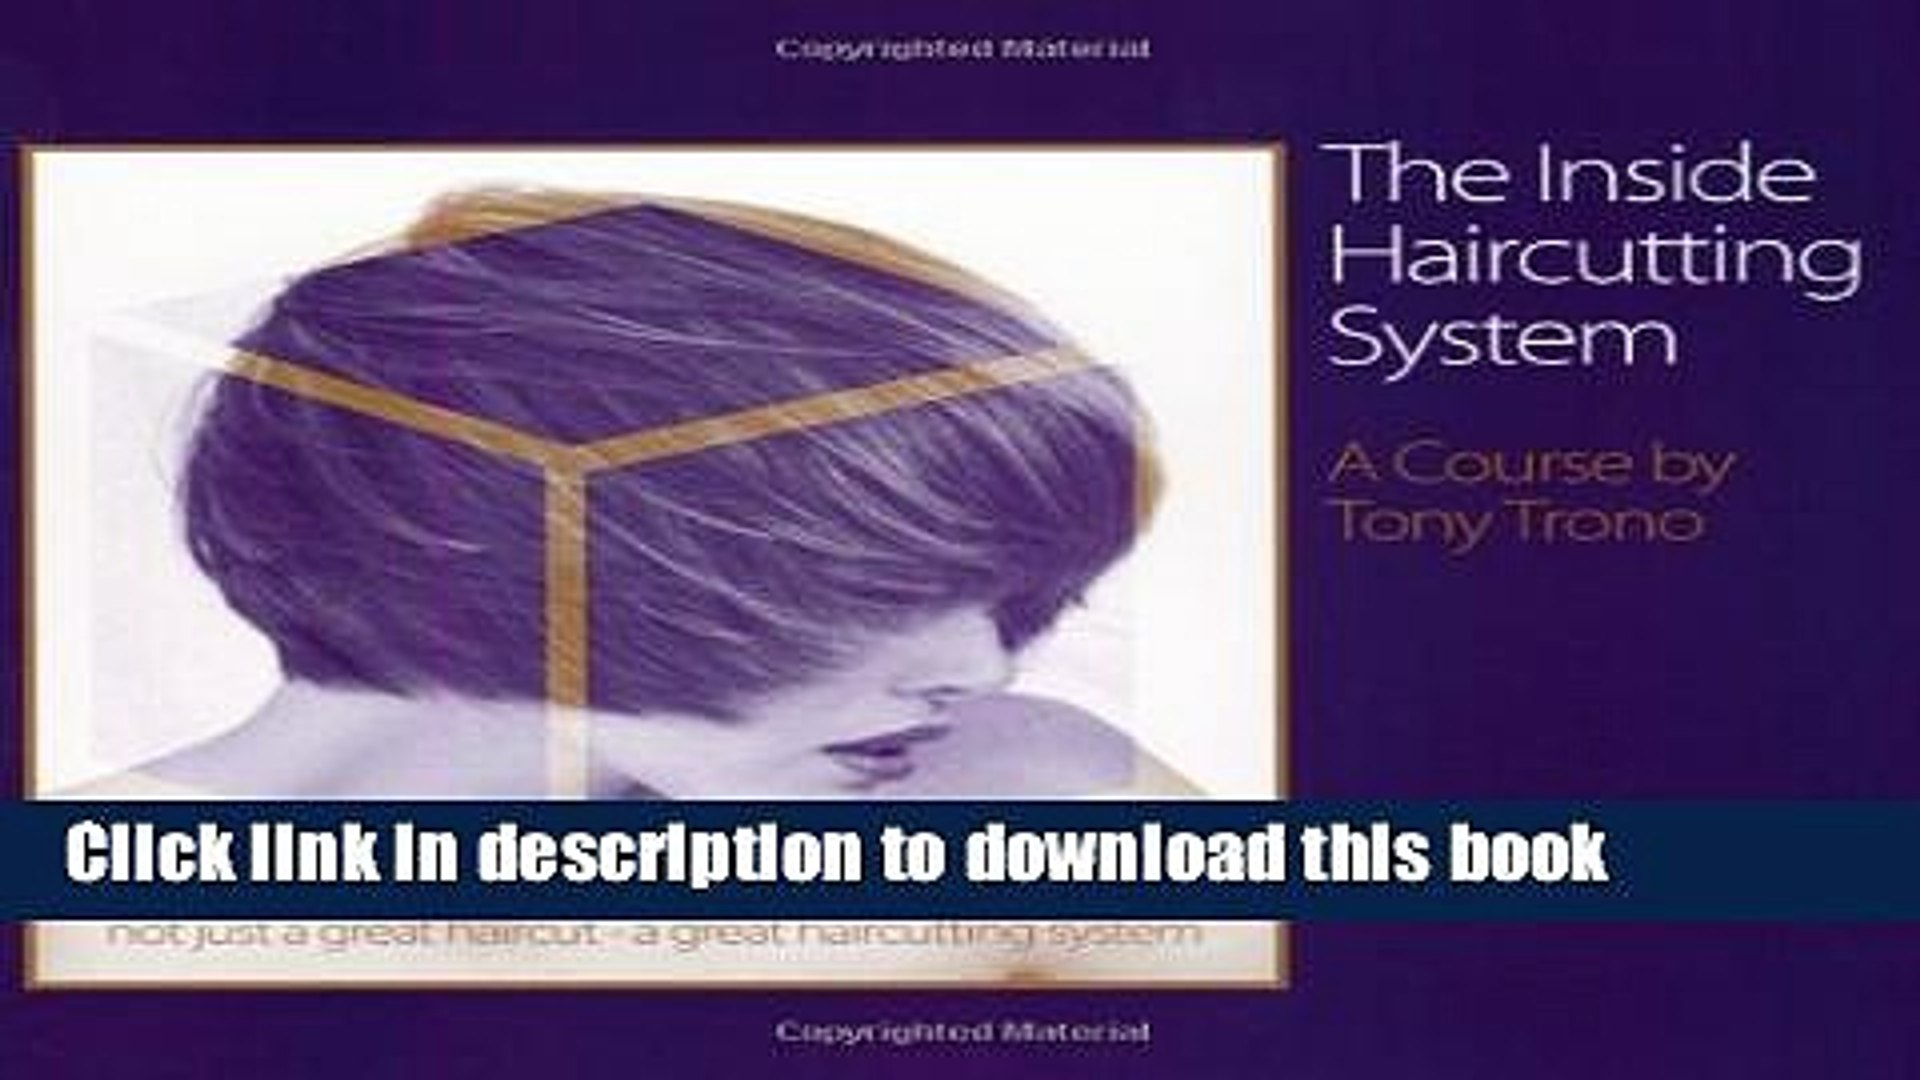 Download The Inside Haircutting System Kindle Collection Video Dailymotion